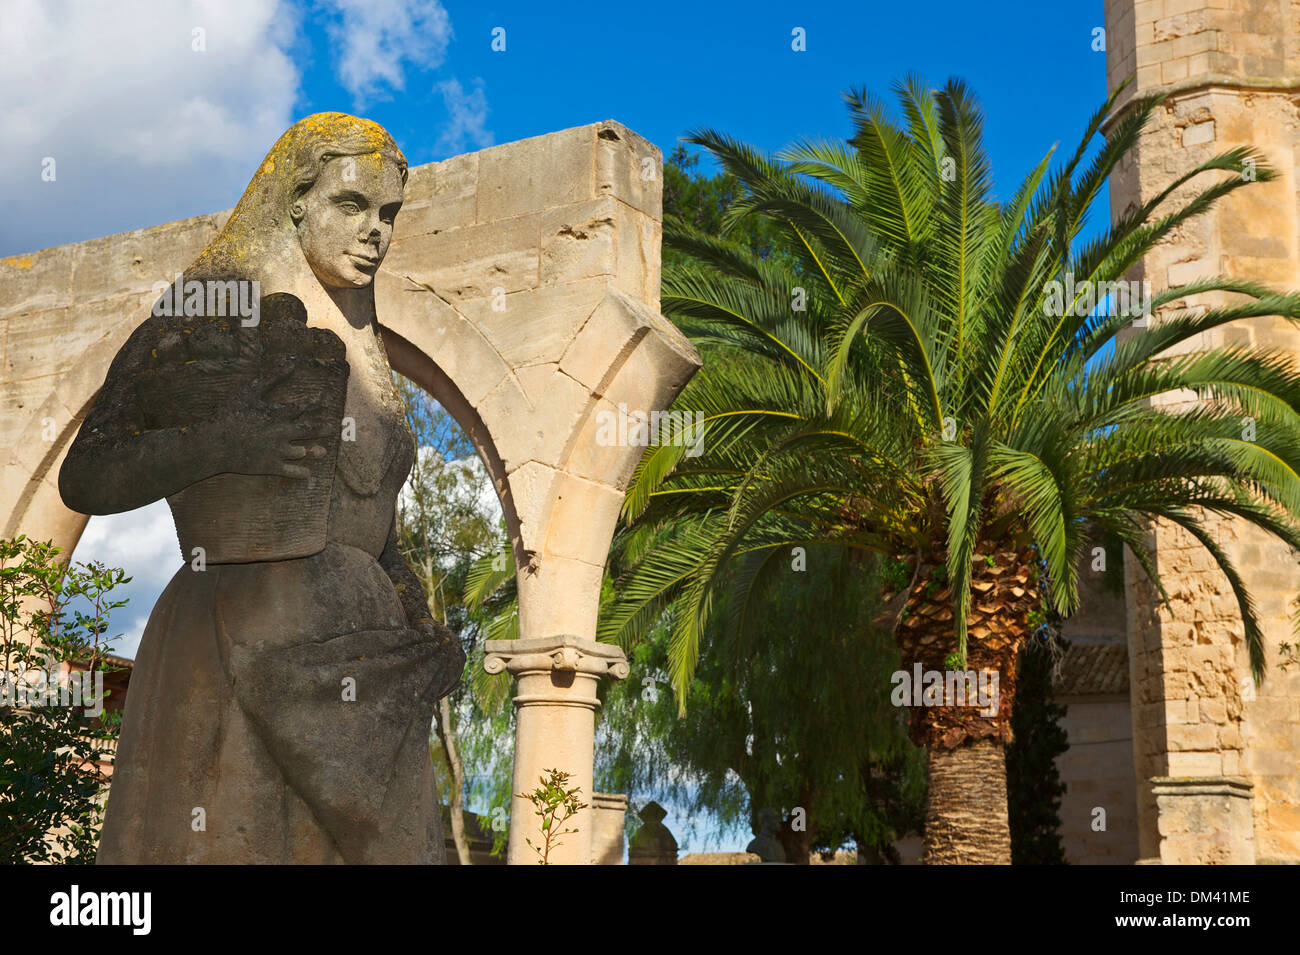 Balearic Islands Majorca Spain Europe statue sculpture figure culture cultural art skill piece of art sculpture Petra outside - Stock Image